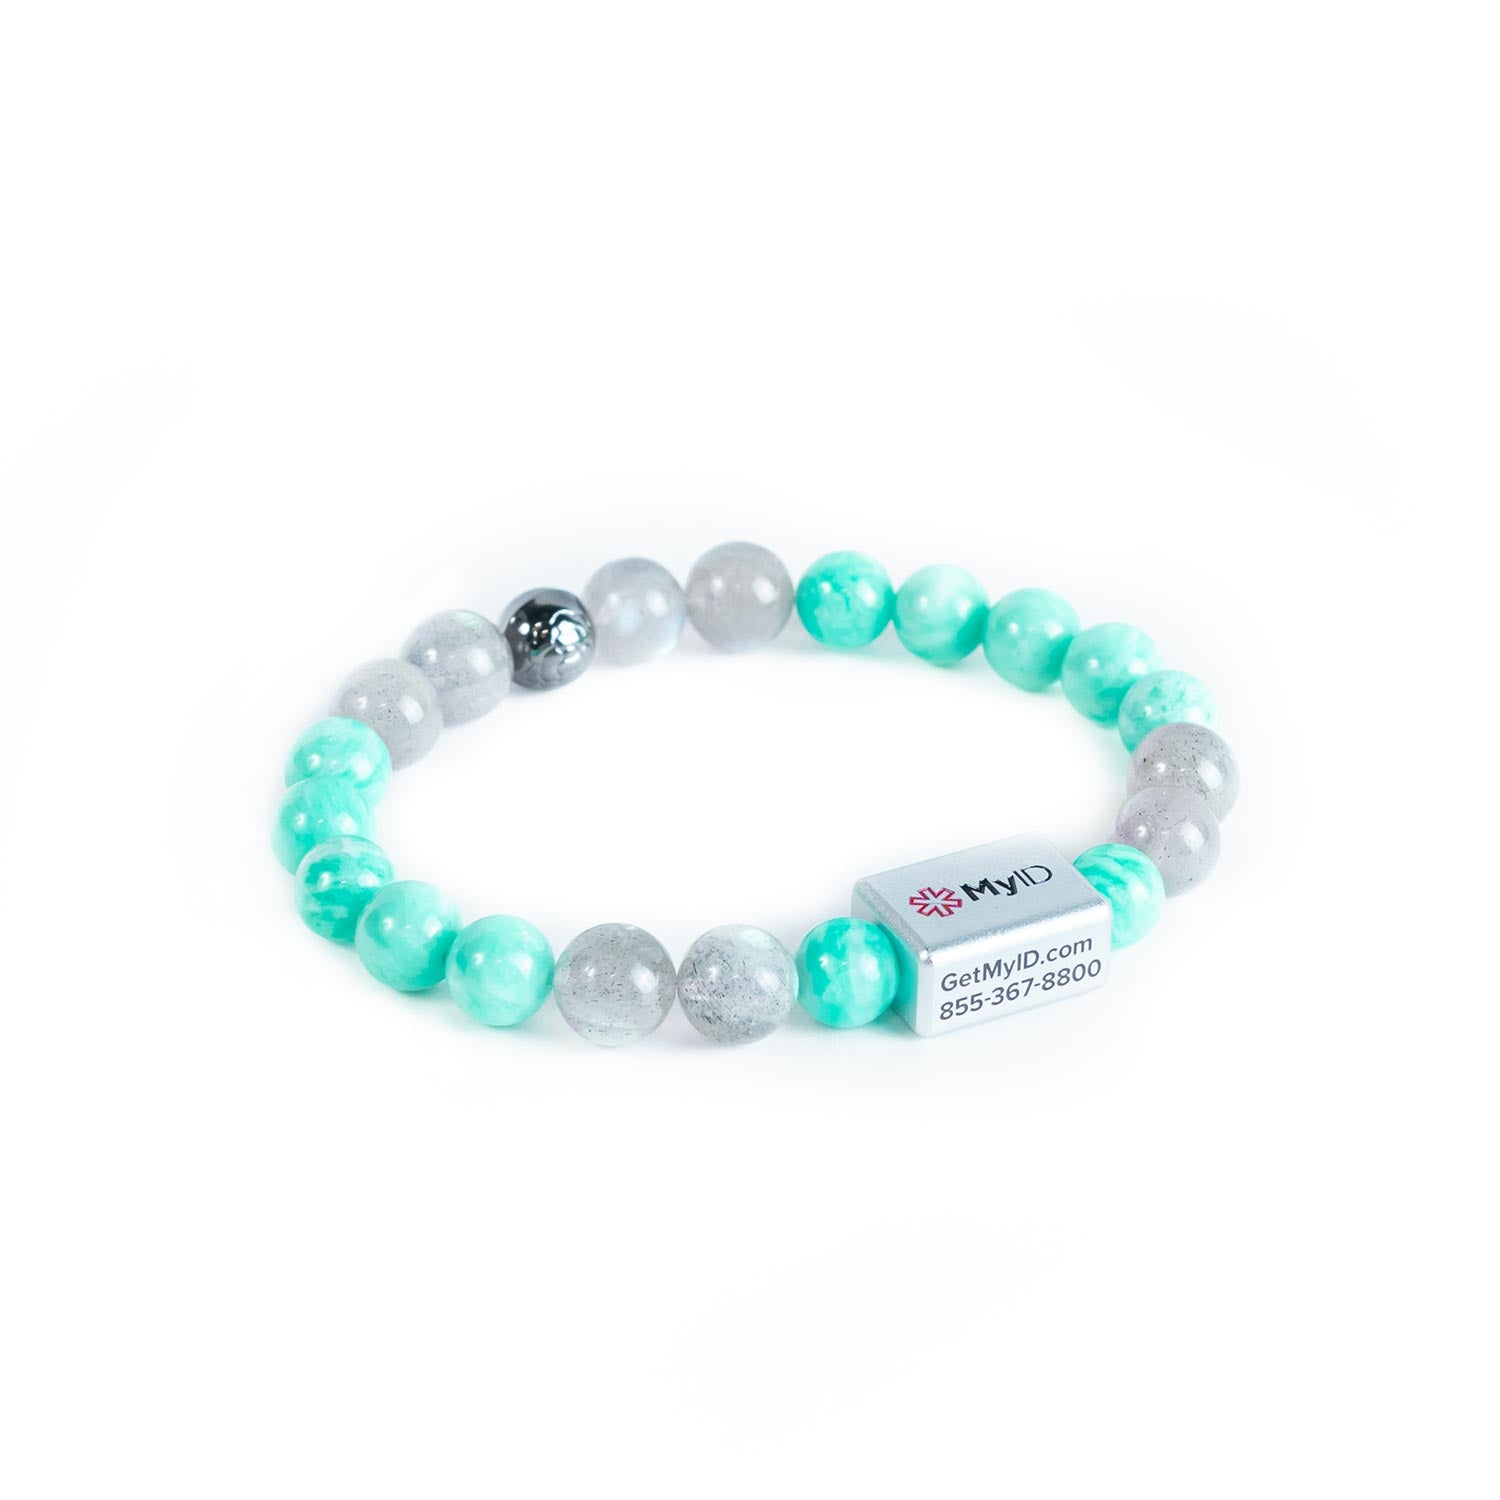 Jade Green Amazonite + Moonstone Medical ID Bracelet